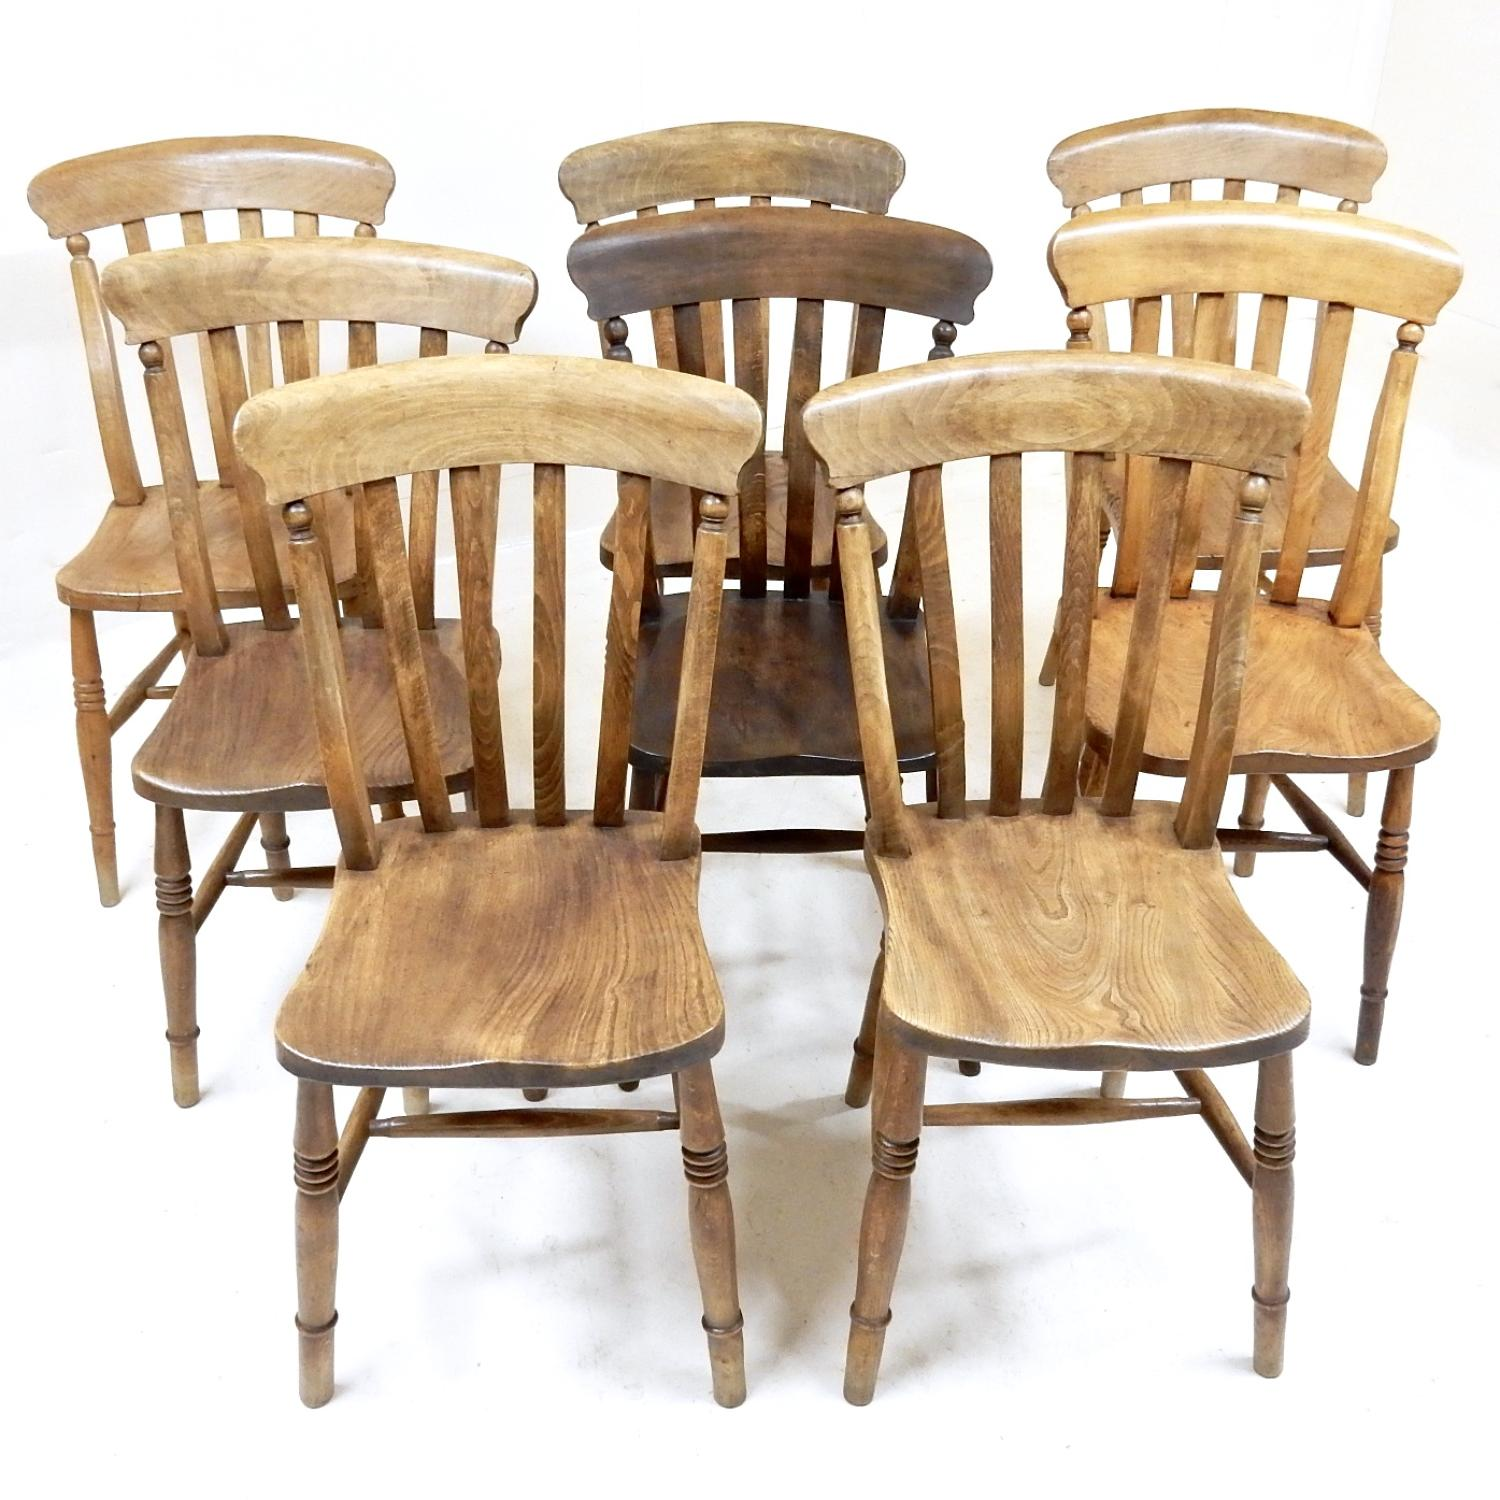 Country Kitchen Table And Chairs: Antique Country Kitchen Chairs In Tables And Chairs